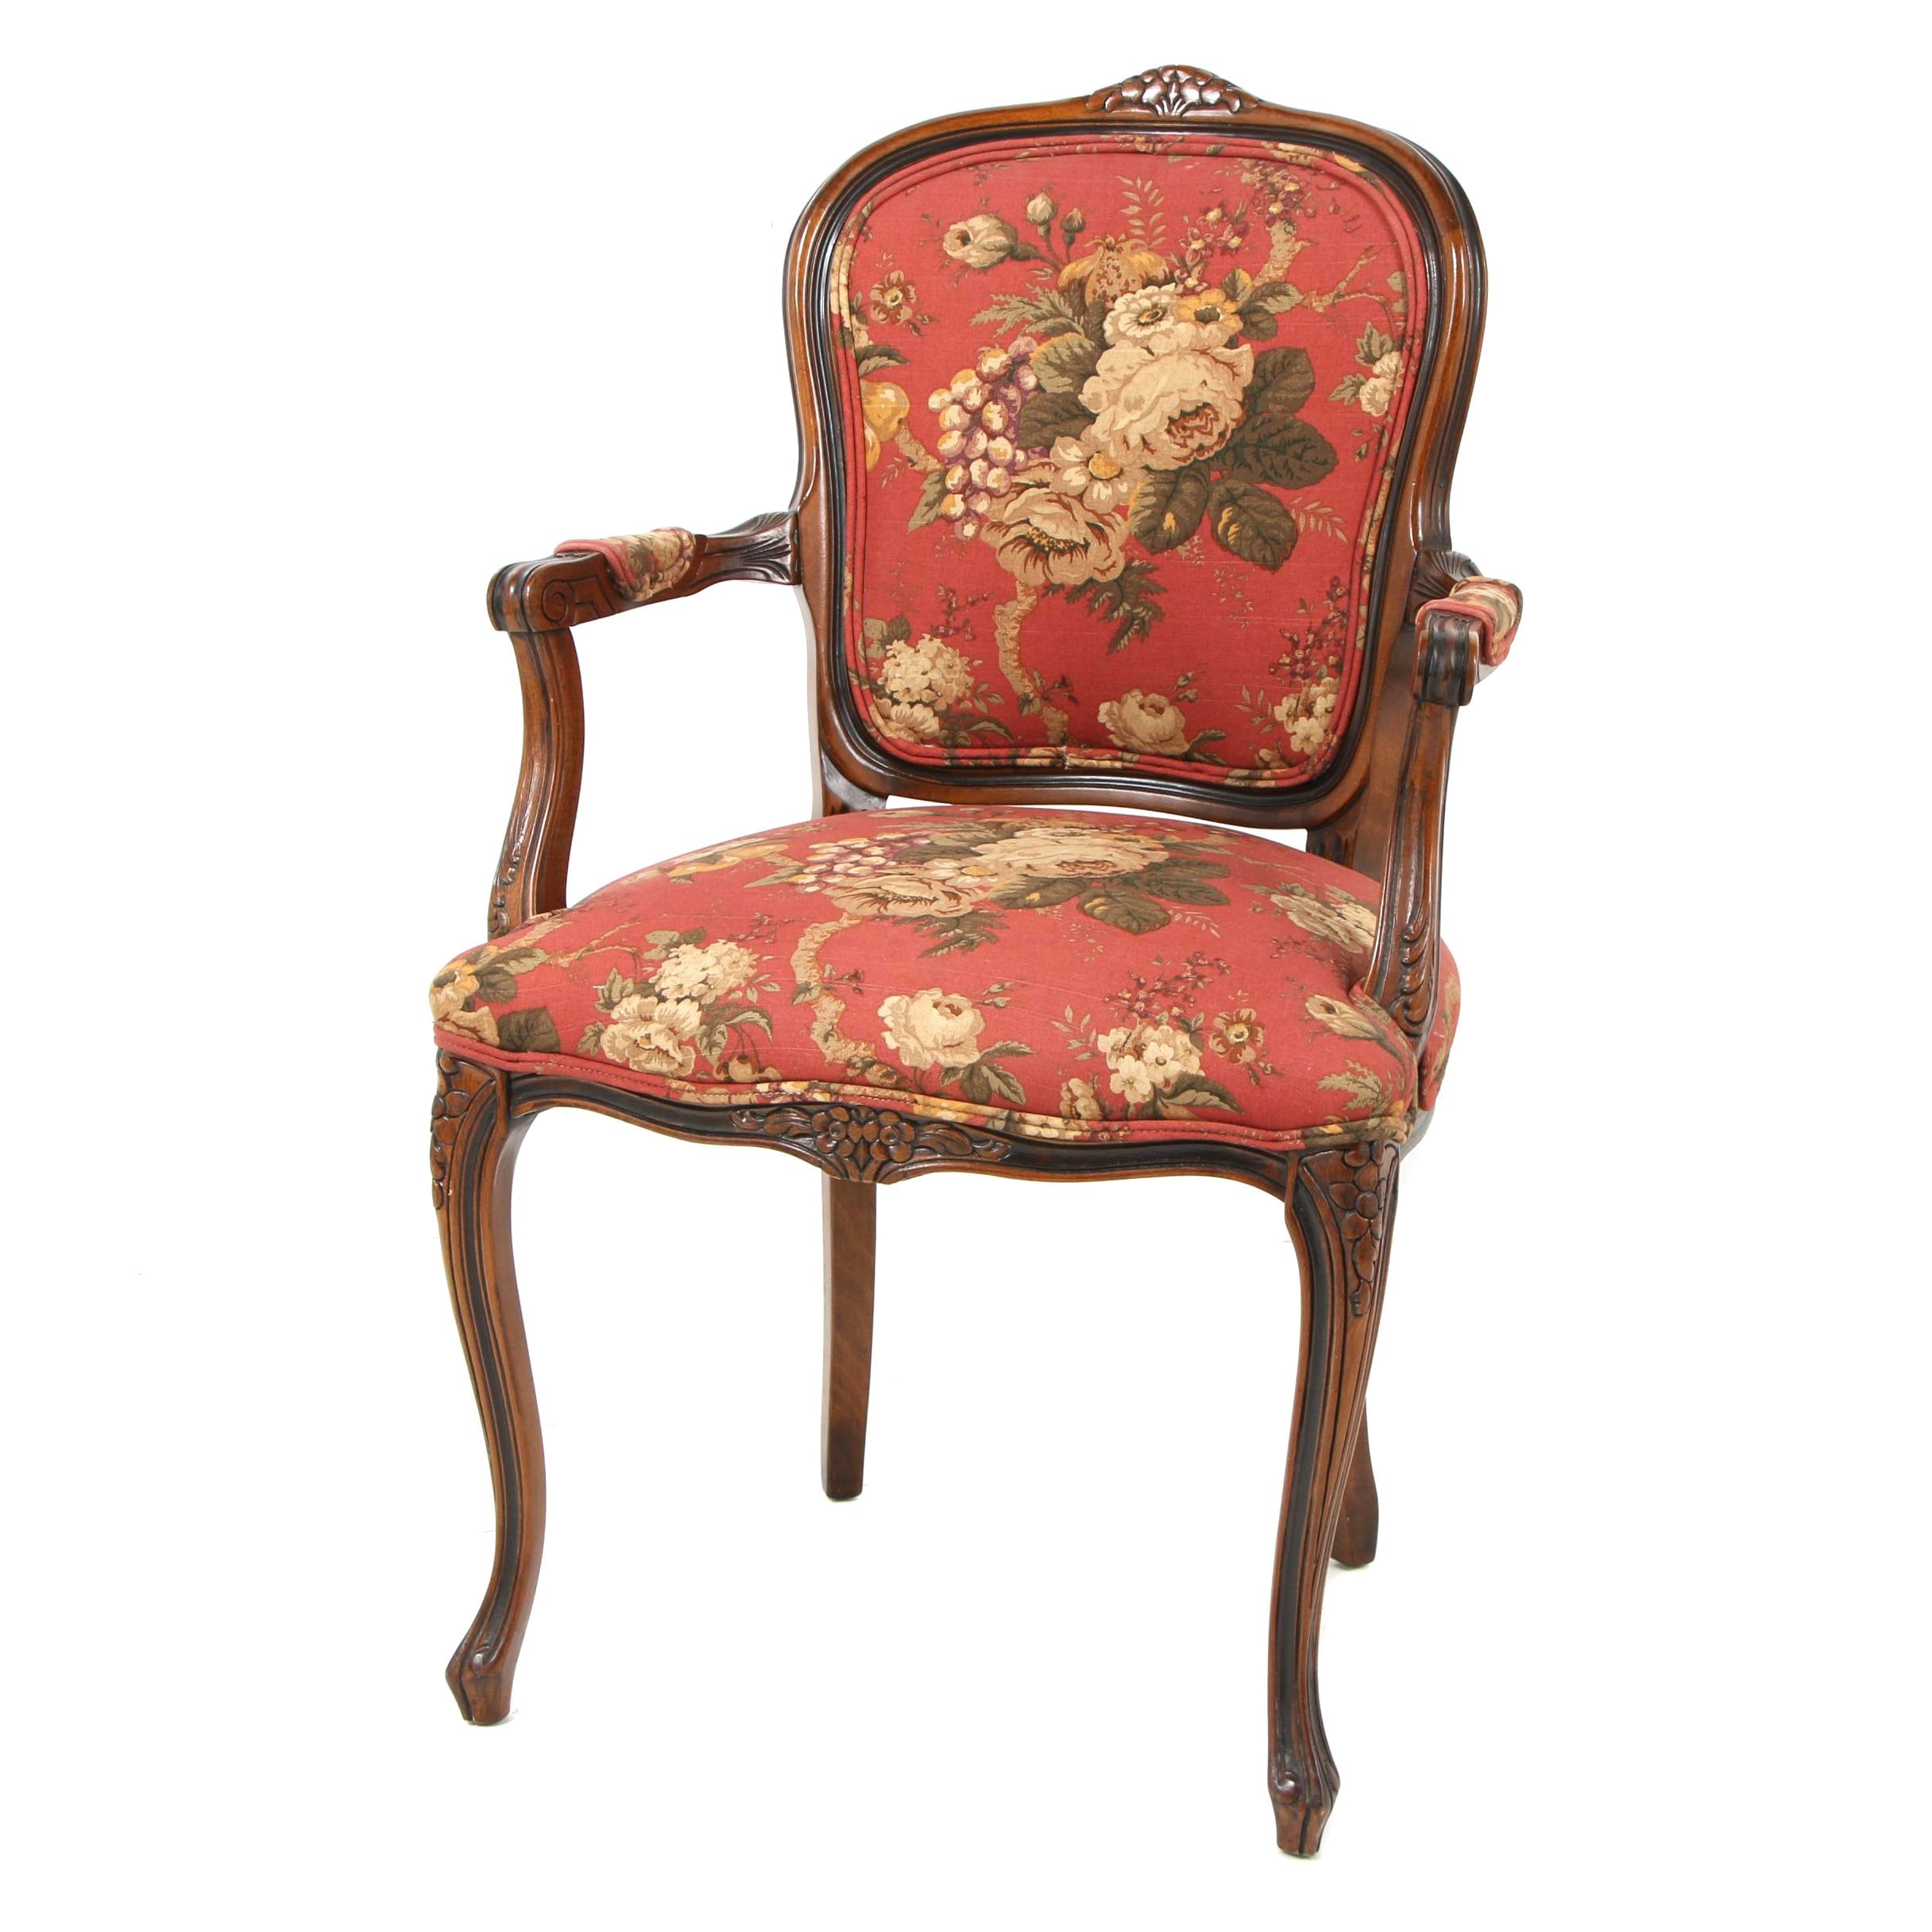 Queen Anne-Style Armchair with Floral Upholstery